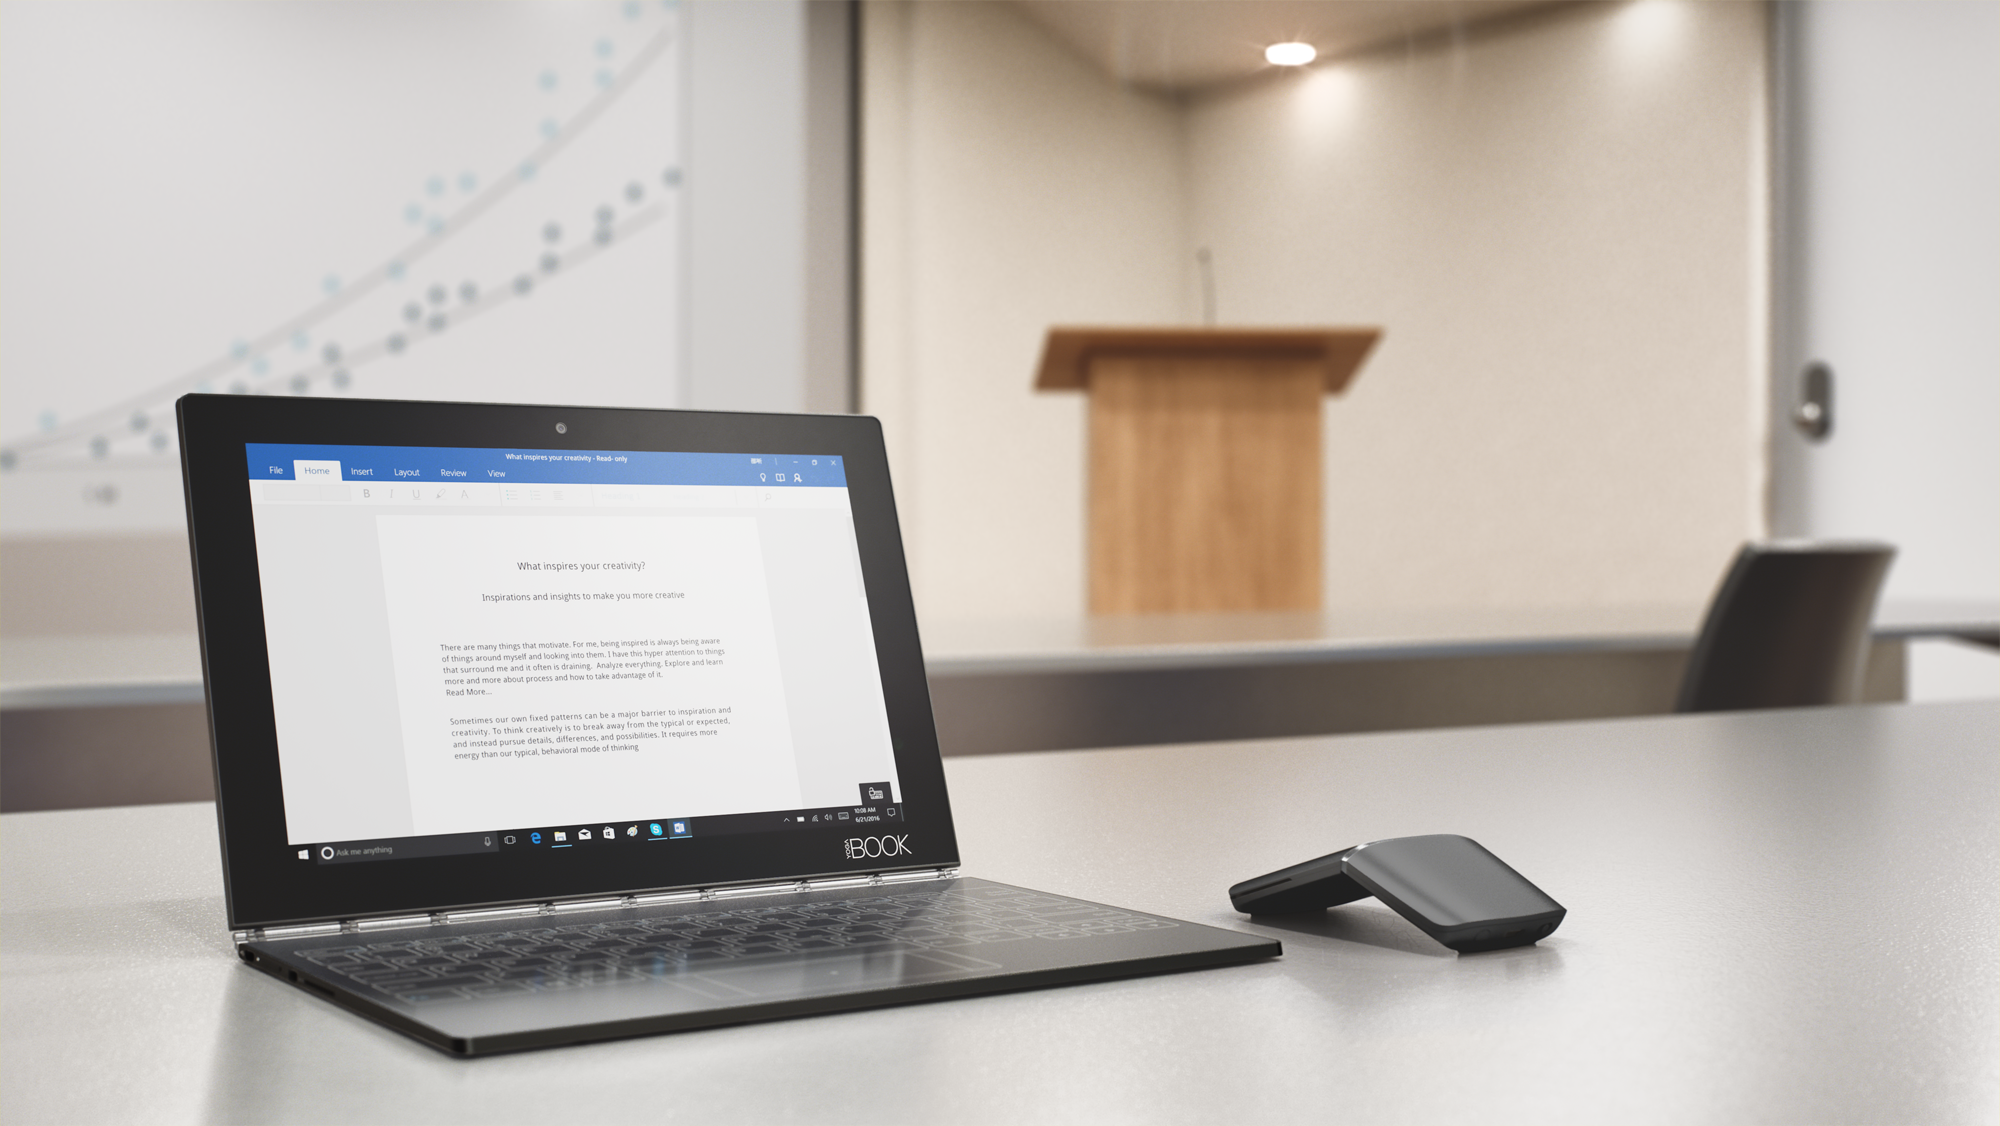 how to connect lenovo yoga book to monitor